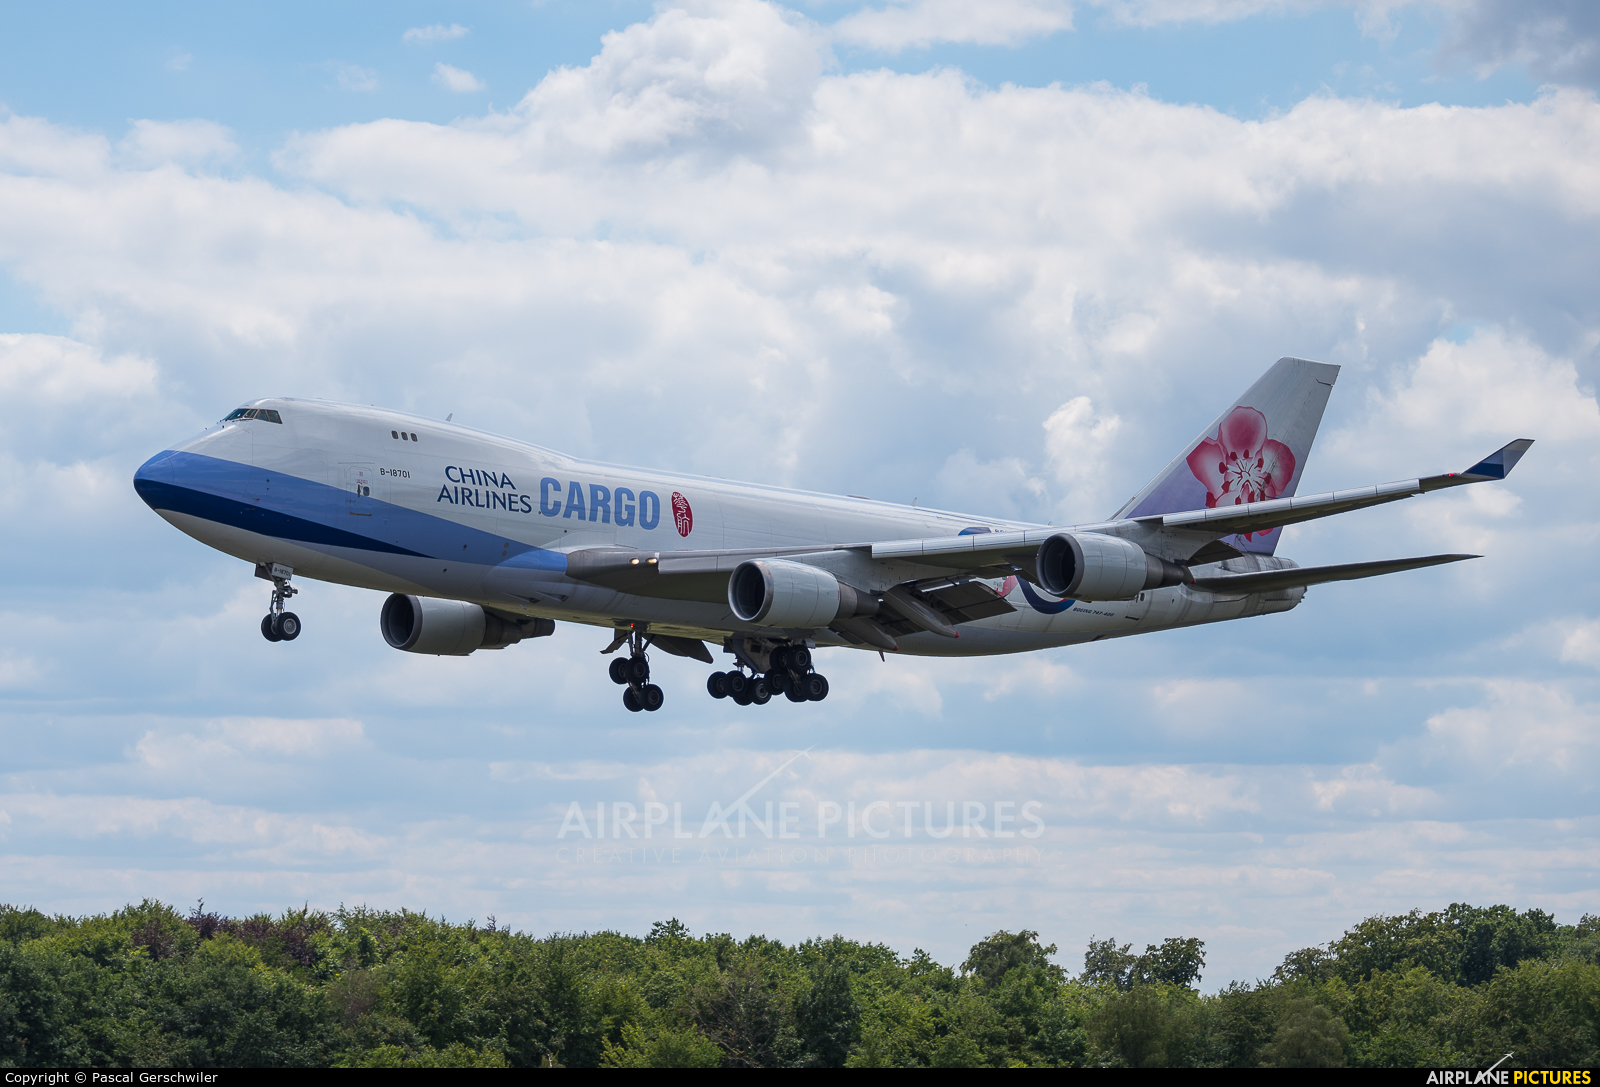 China Airlines Cargo B-18701 aircraft at Luxembourg - Findel